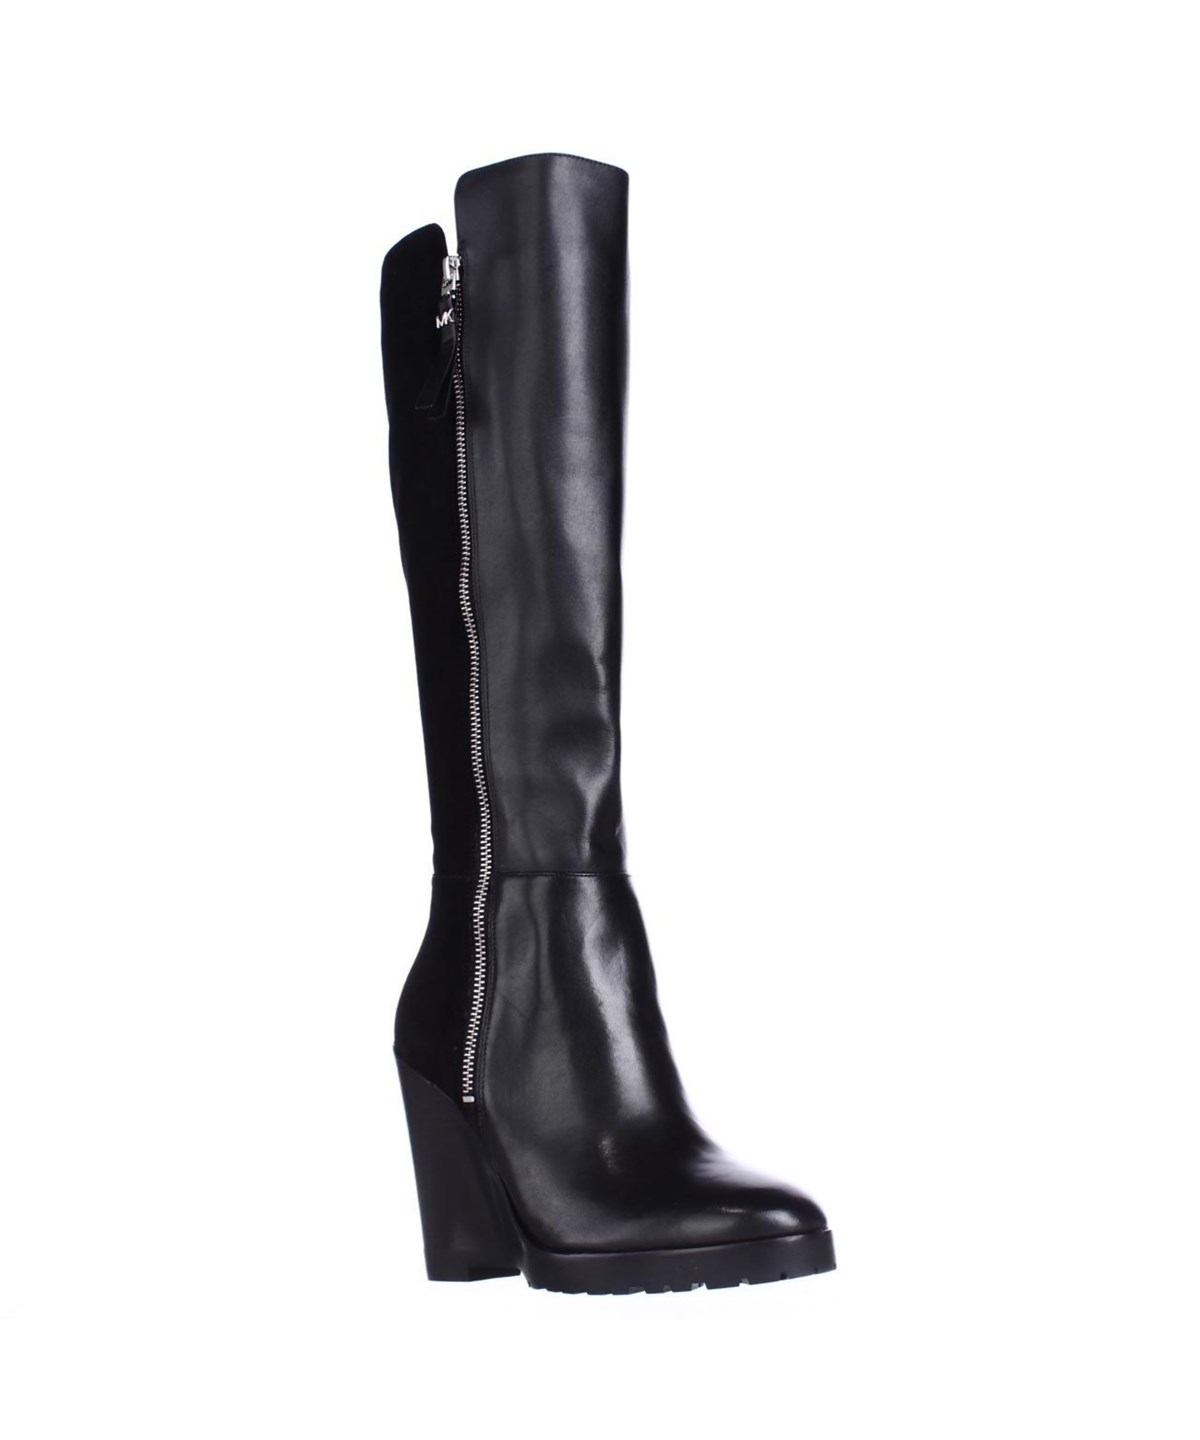 Michael Kors Womens Clara Leather Closed Toe Knee High Fashion Boots In Black